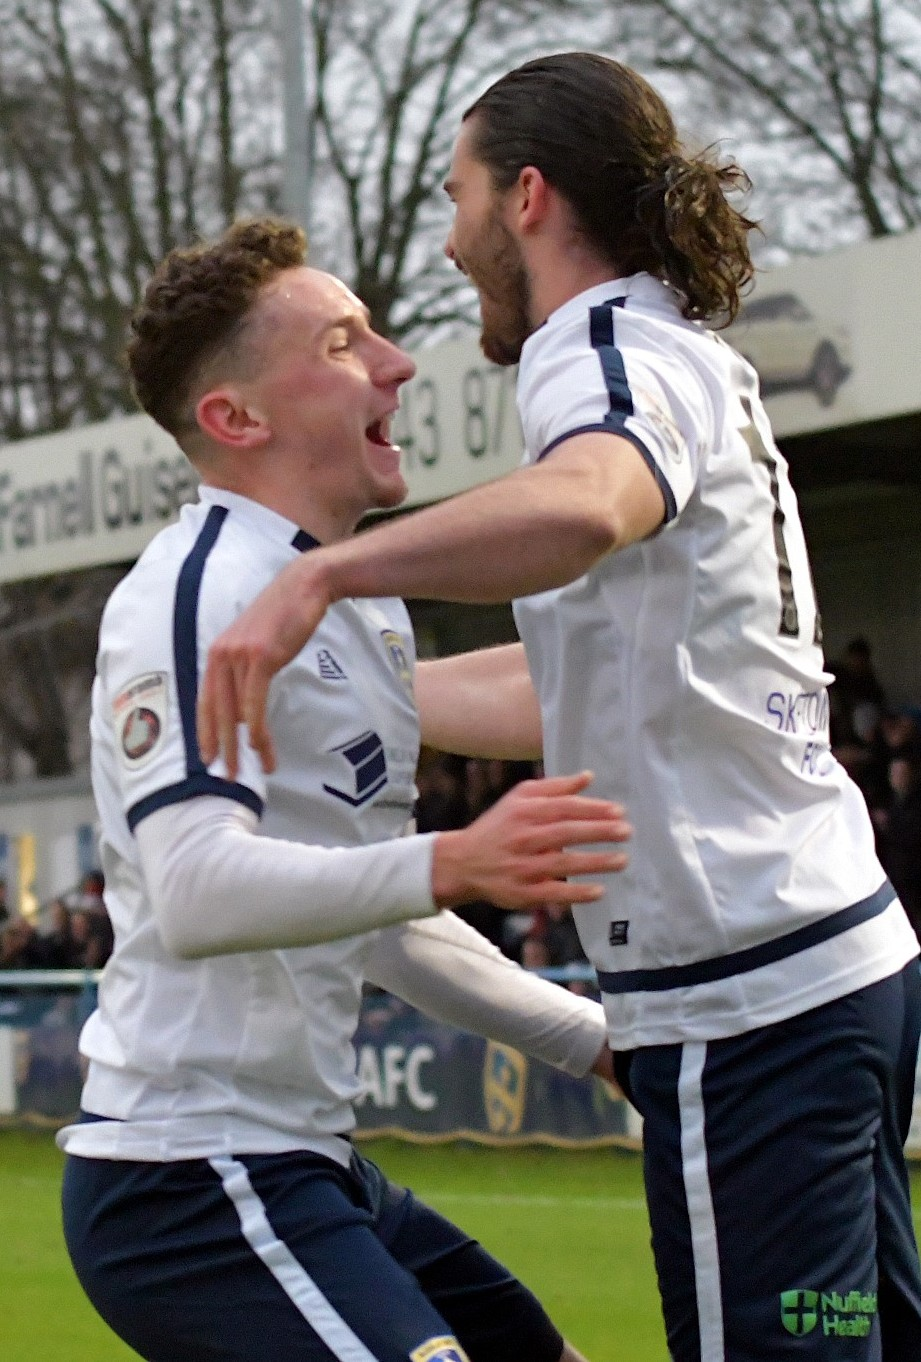 Alex Purver, right, is congratulated by Callum McFadzean after scoring against Aldershot in Saturday's 1-1 draw at Nethermoor